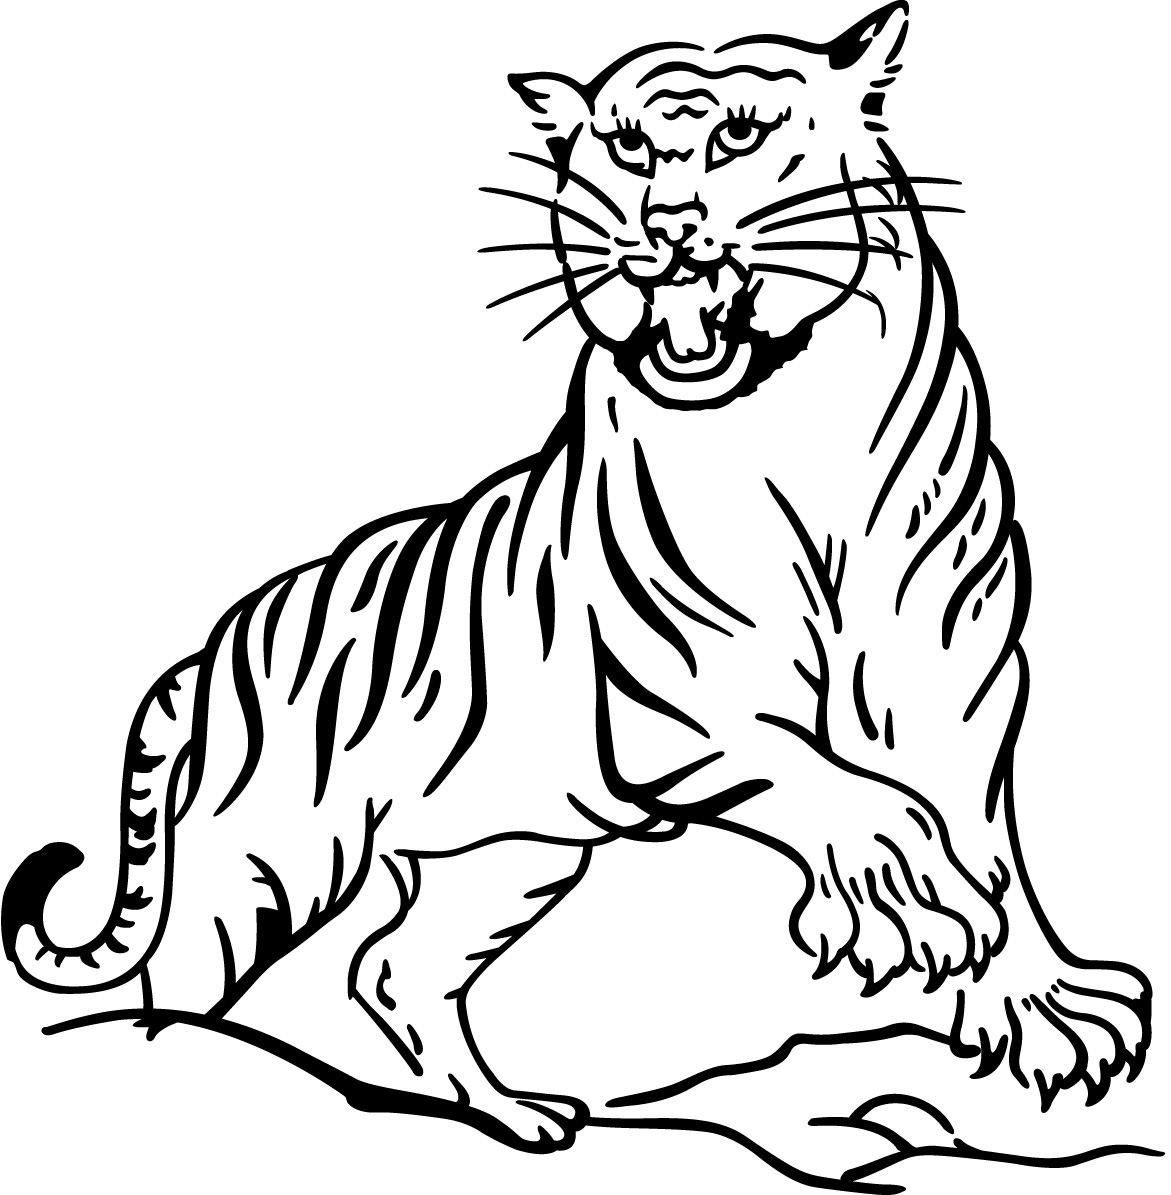 printable pictures of tigers free printable tiger coloring pages for kids pictures printable tigers of